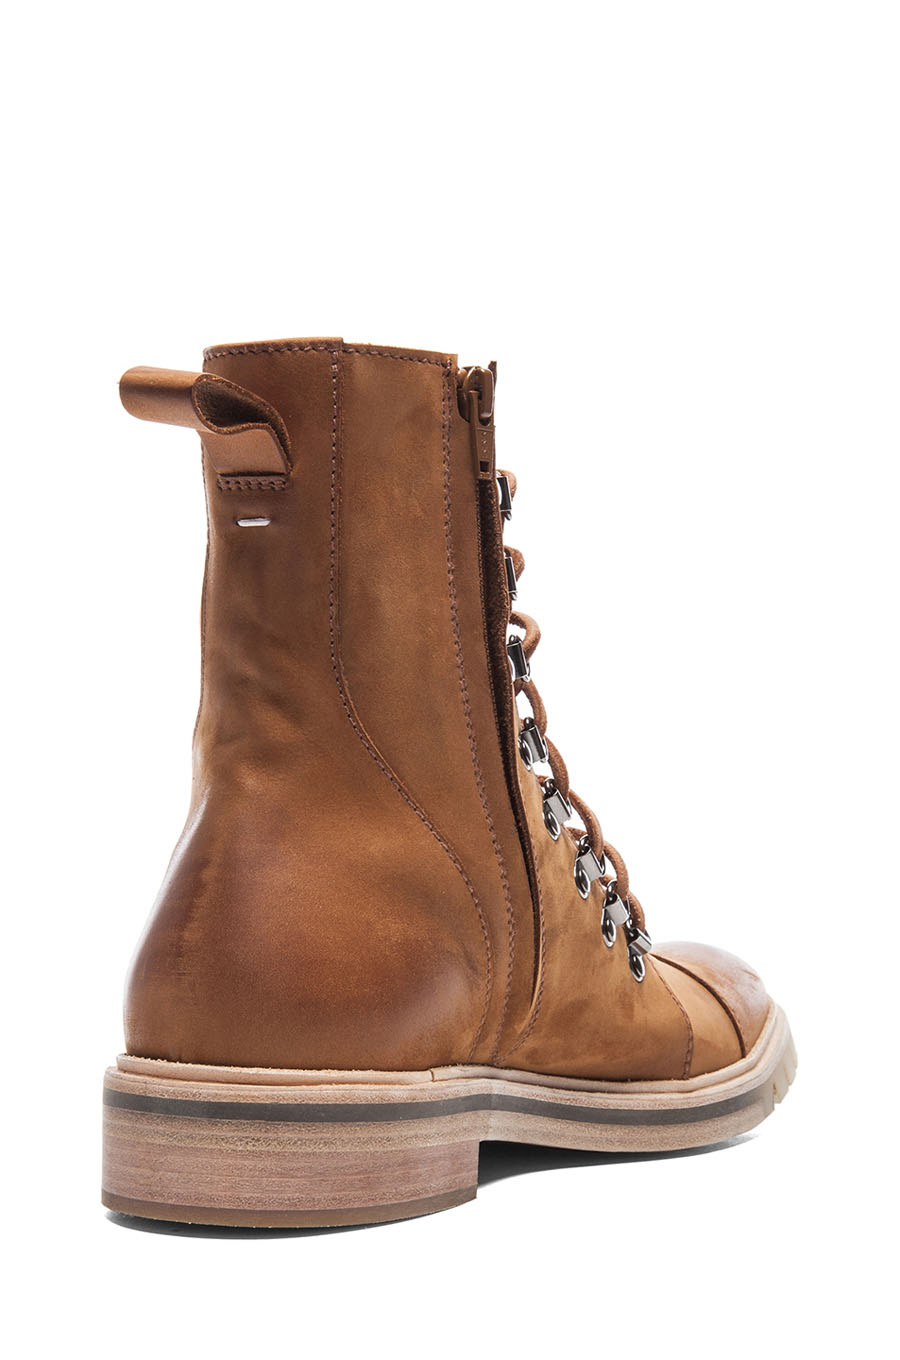 Honey Suede Lace-Up Boot Maison Martin 4